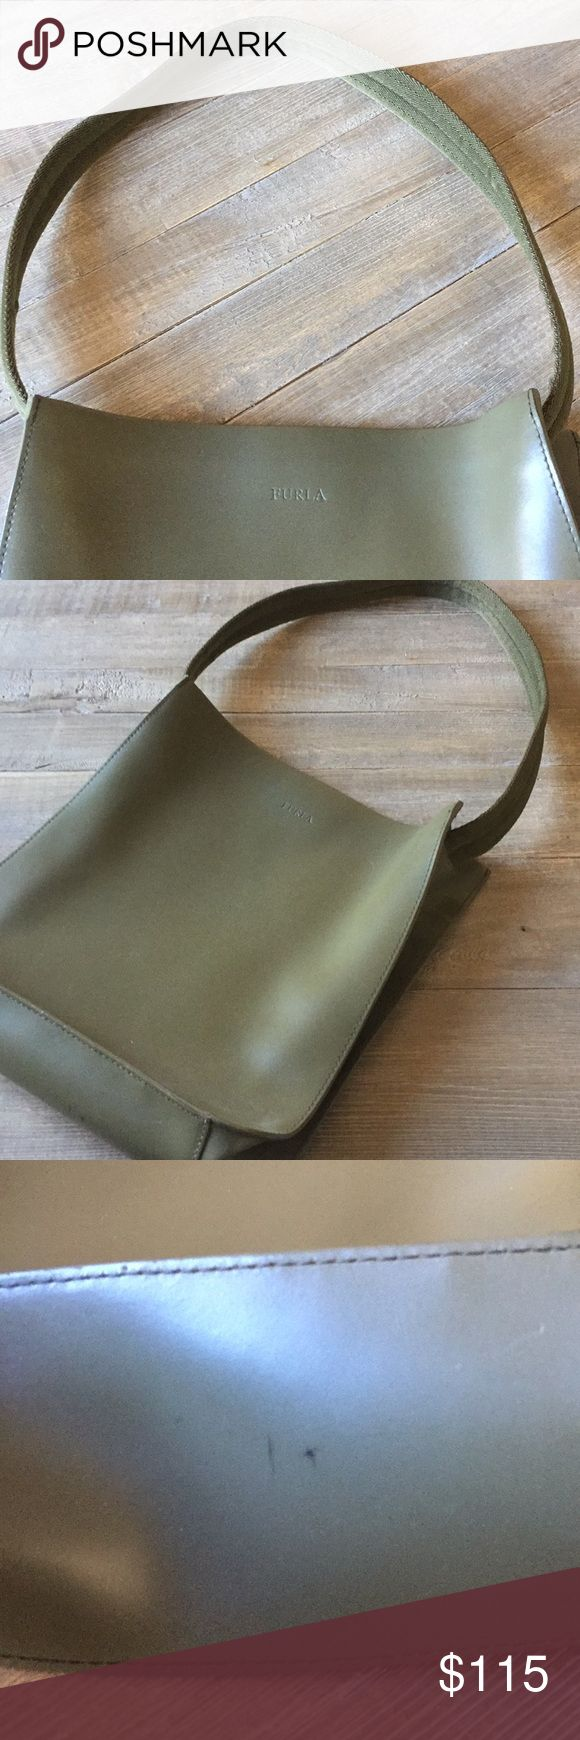 Olive green Furla purse This is a beautiful purse and is gently used. It has one mark on the bottom, but otherwise is in great shape! Furla Bags Shoulder Bags